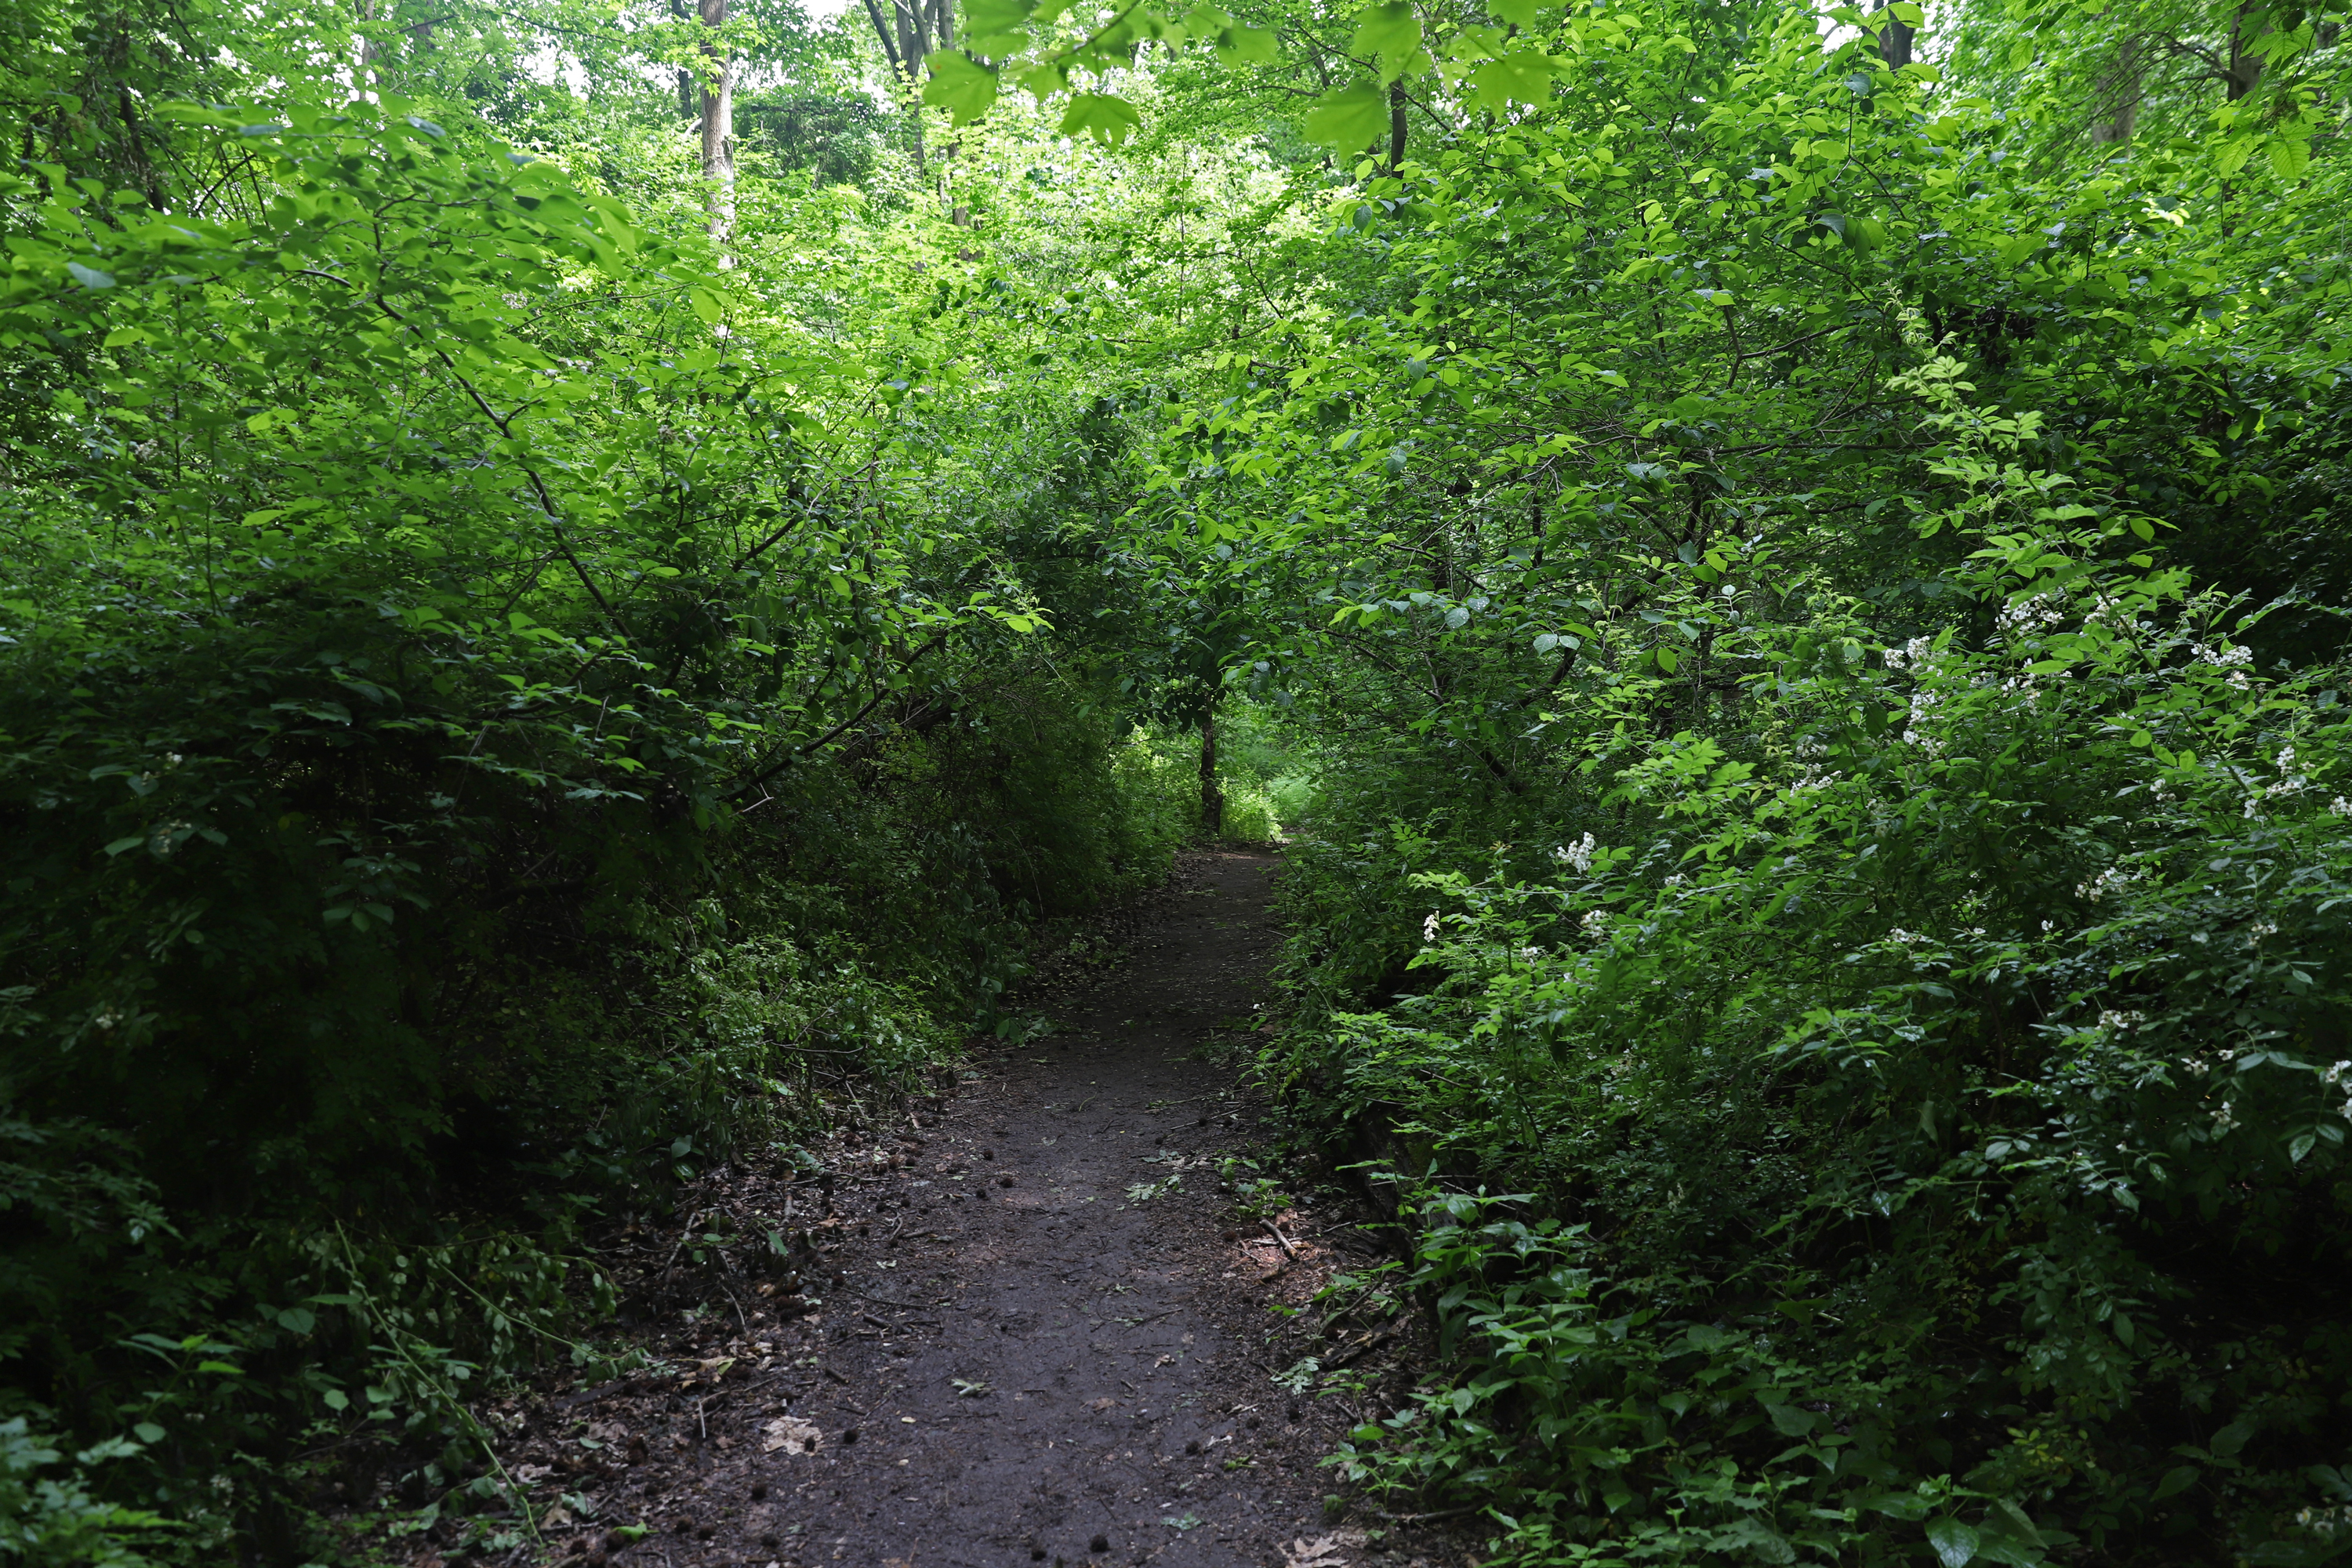 Alley Pond Park in Queens has a number of hiking trails, June 4, 2021.